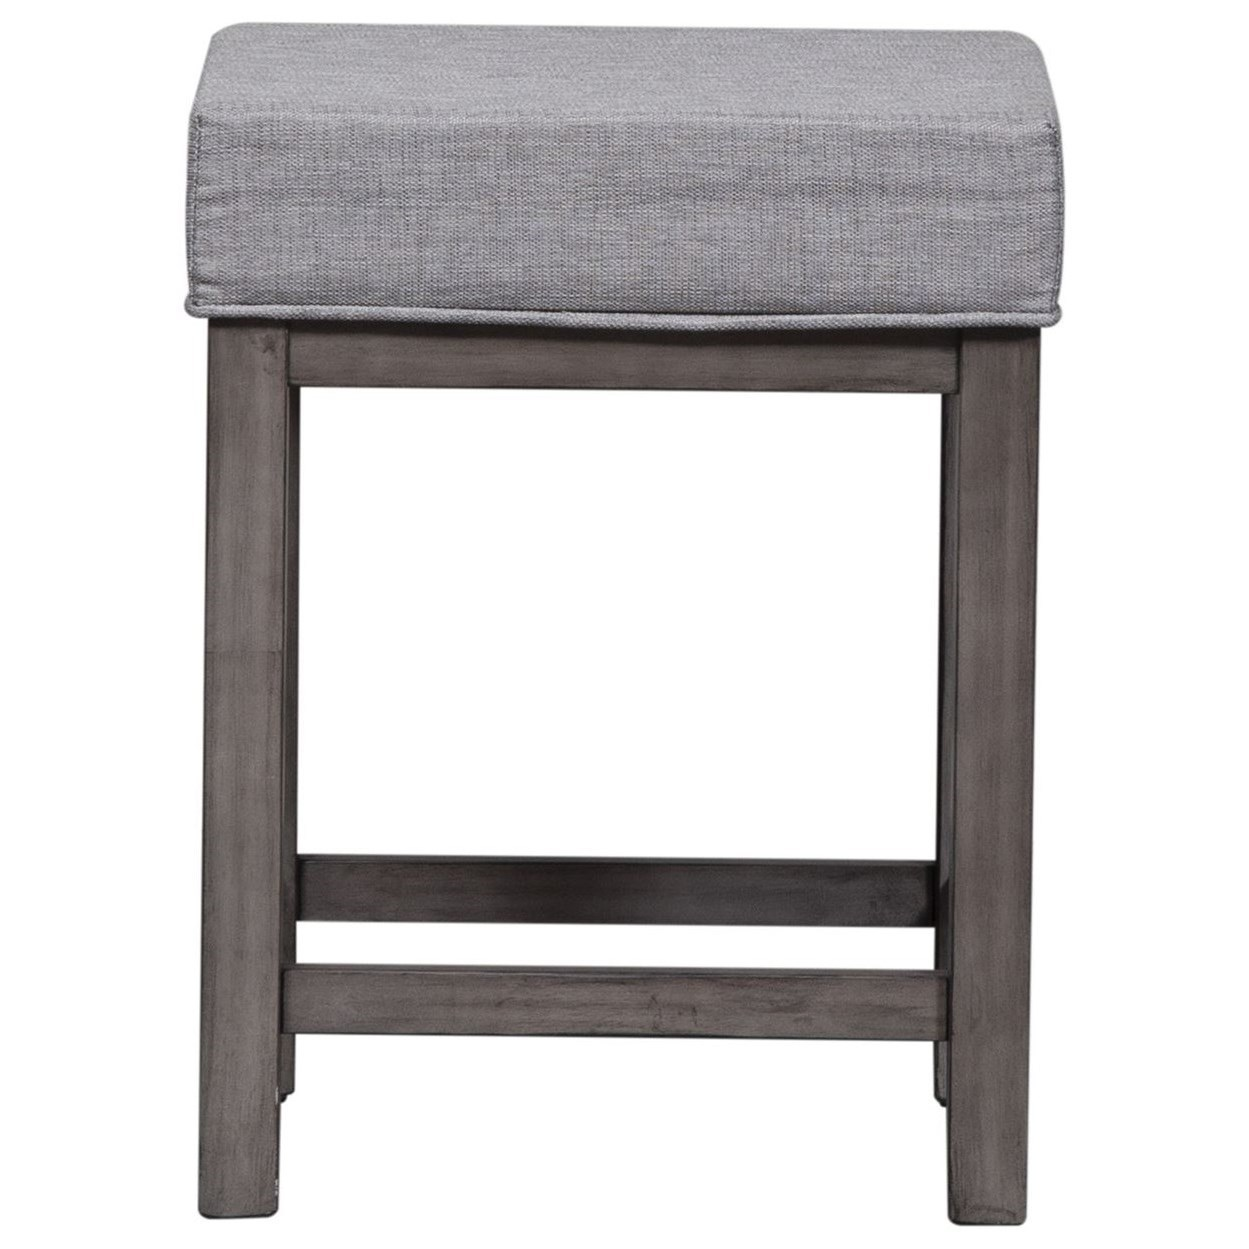 Tanners Creek Upholstered 3-Piece Console Stool Set by Liberty Furniture at Darvin Furniture